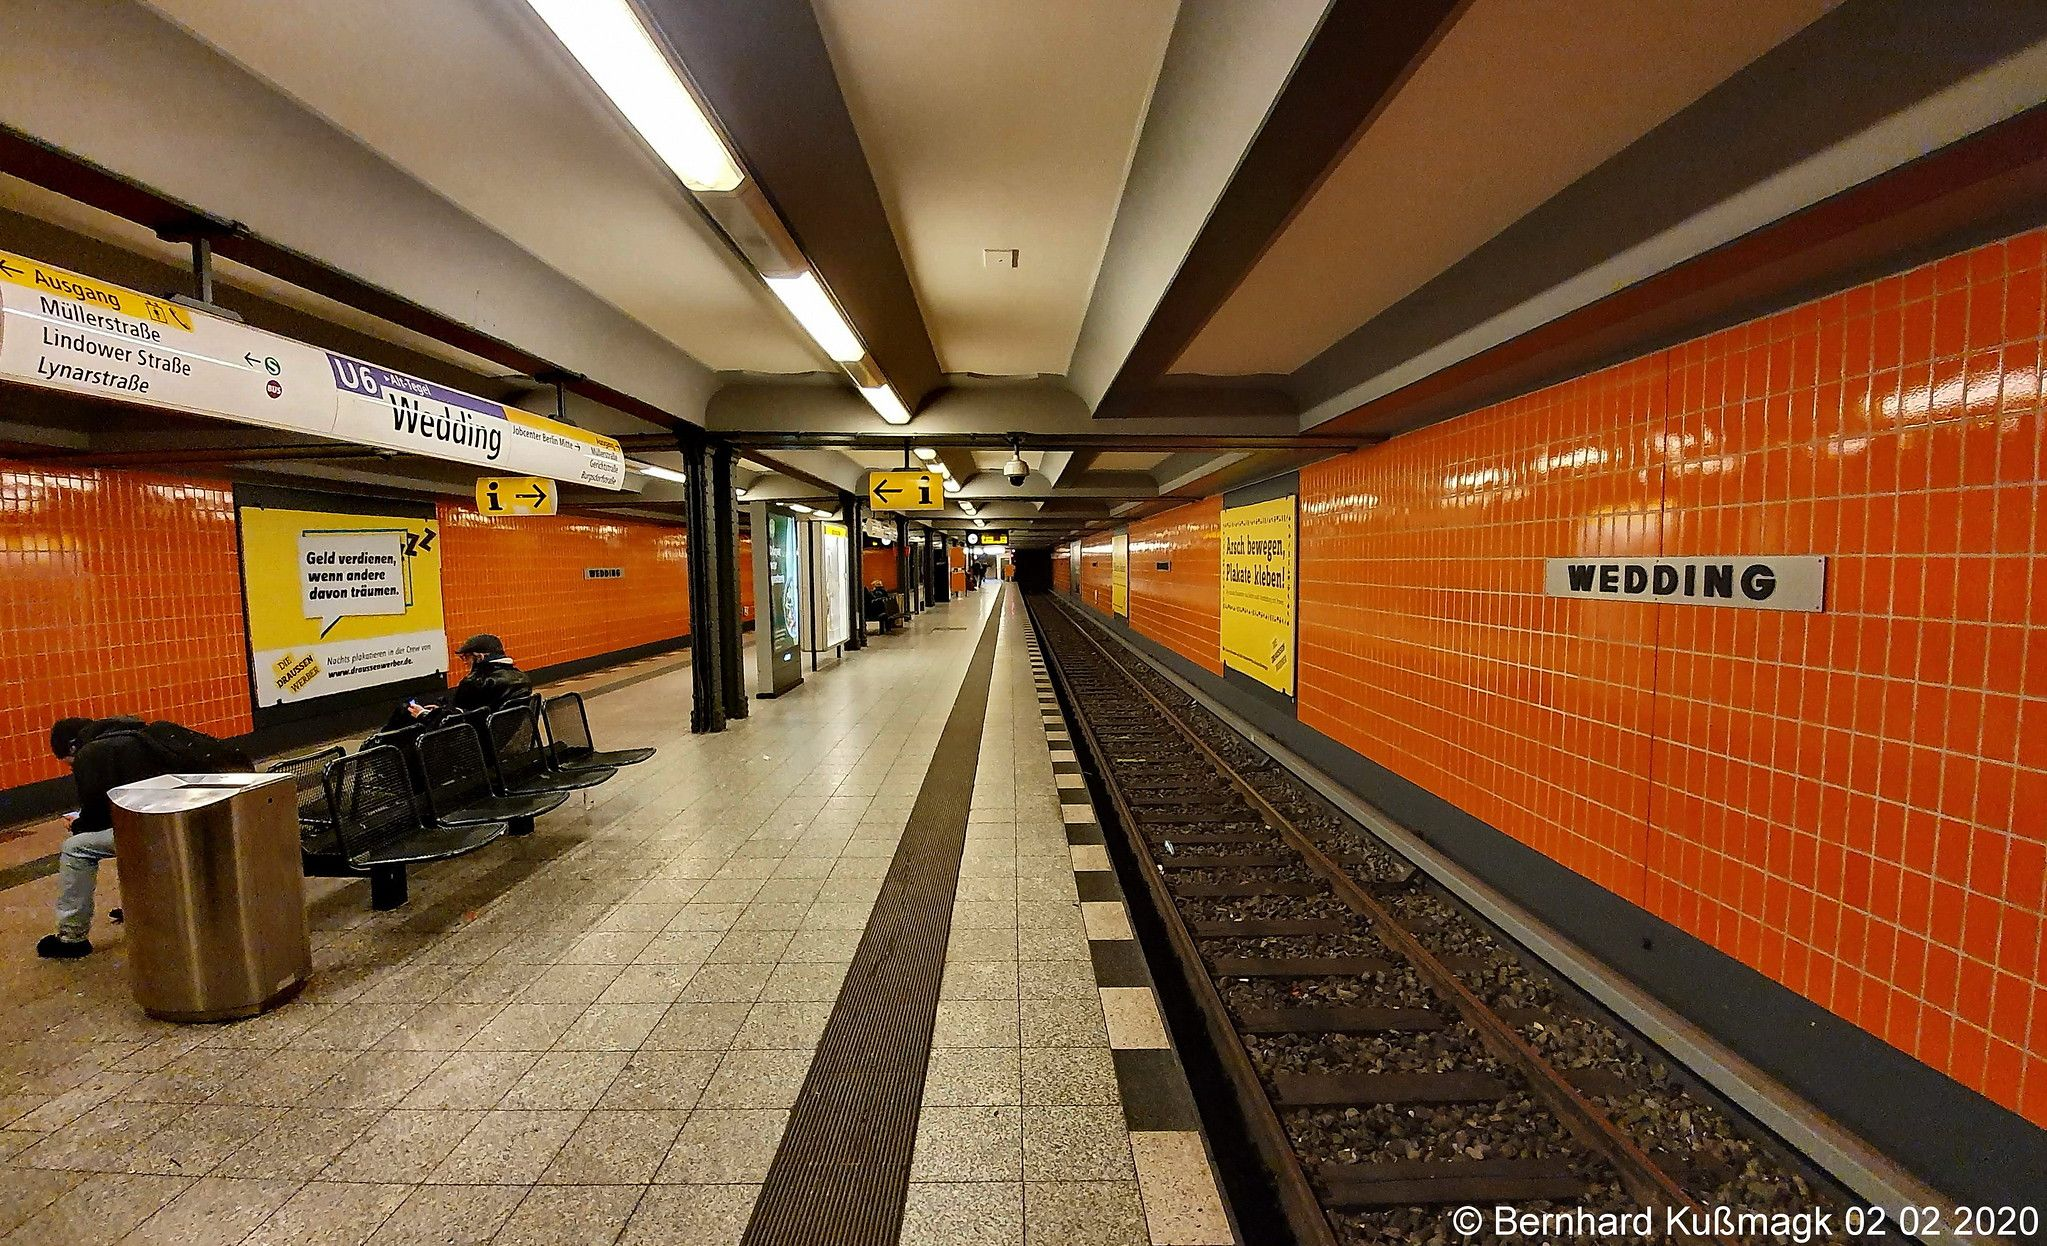 Europa Deutschland Berlin Mitte Wedding U Bahnhof Wedding U Bahn Linie U6 In 2020 Berlin Underground Train